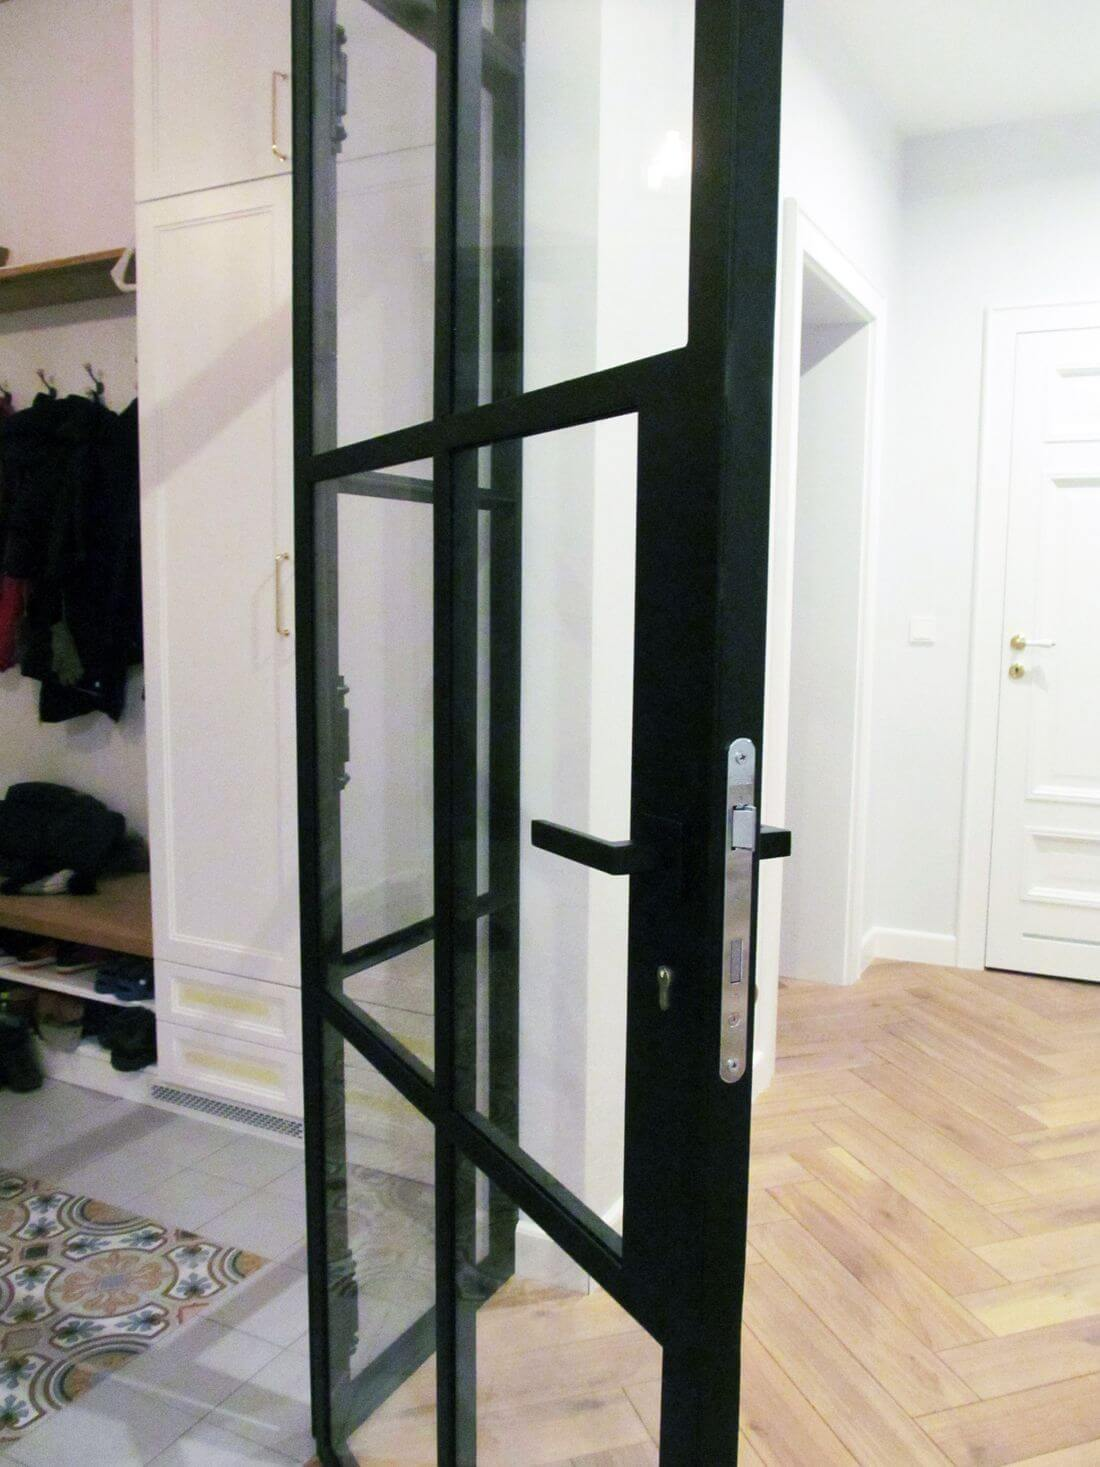 Handle with cylinder lock in loft door with industrial glazed wall made of structural steel